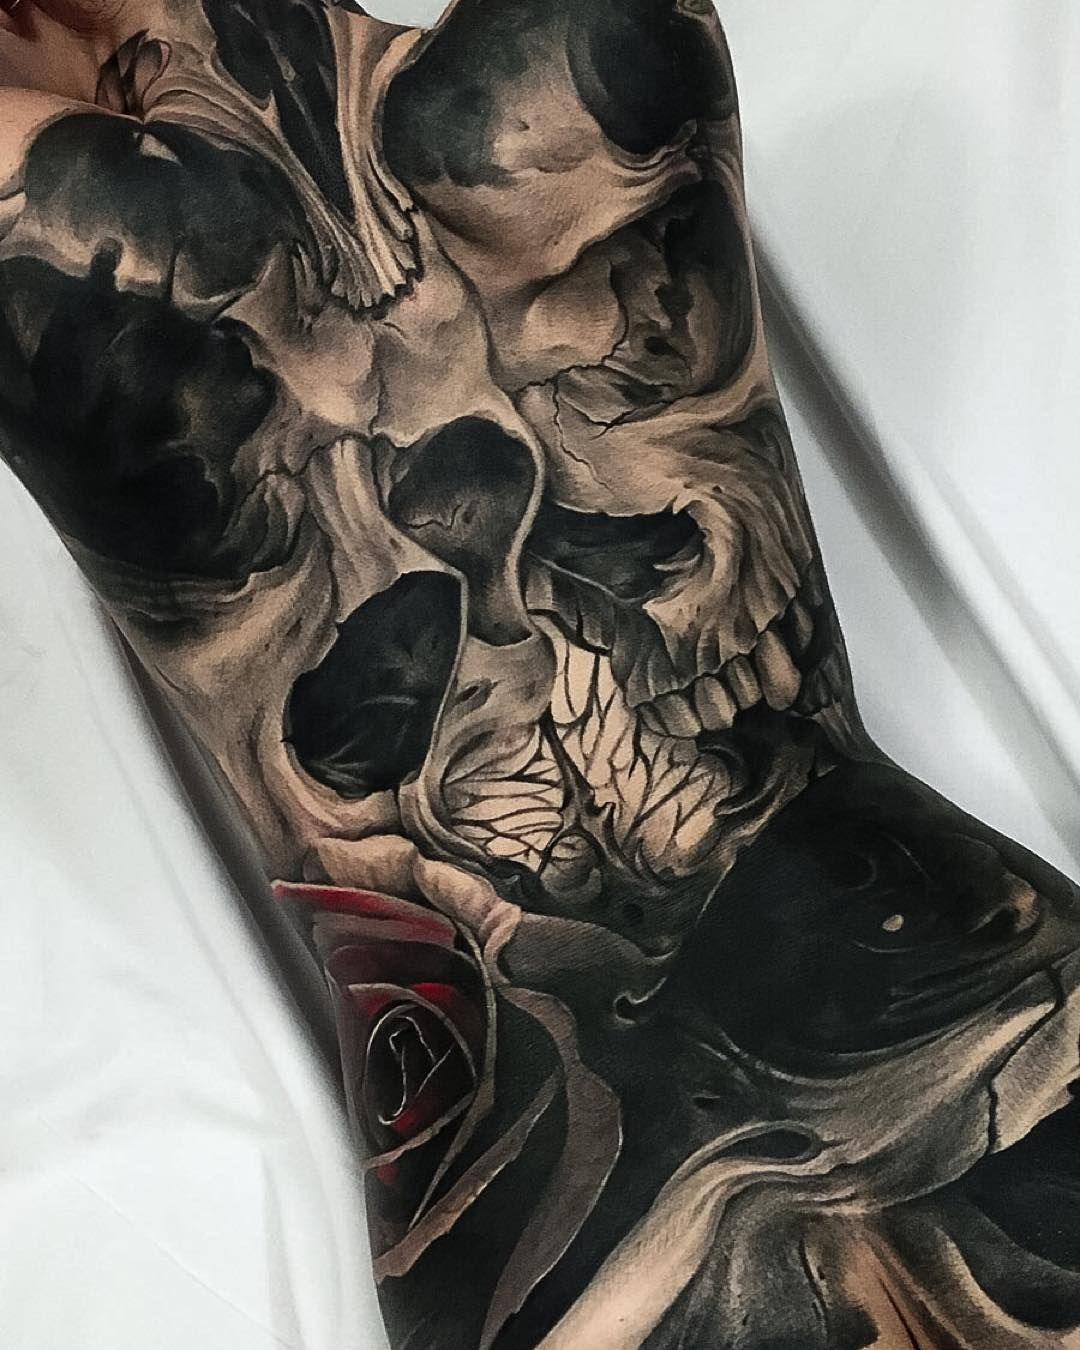 Details from the 9 cover up back piece. skull rose